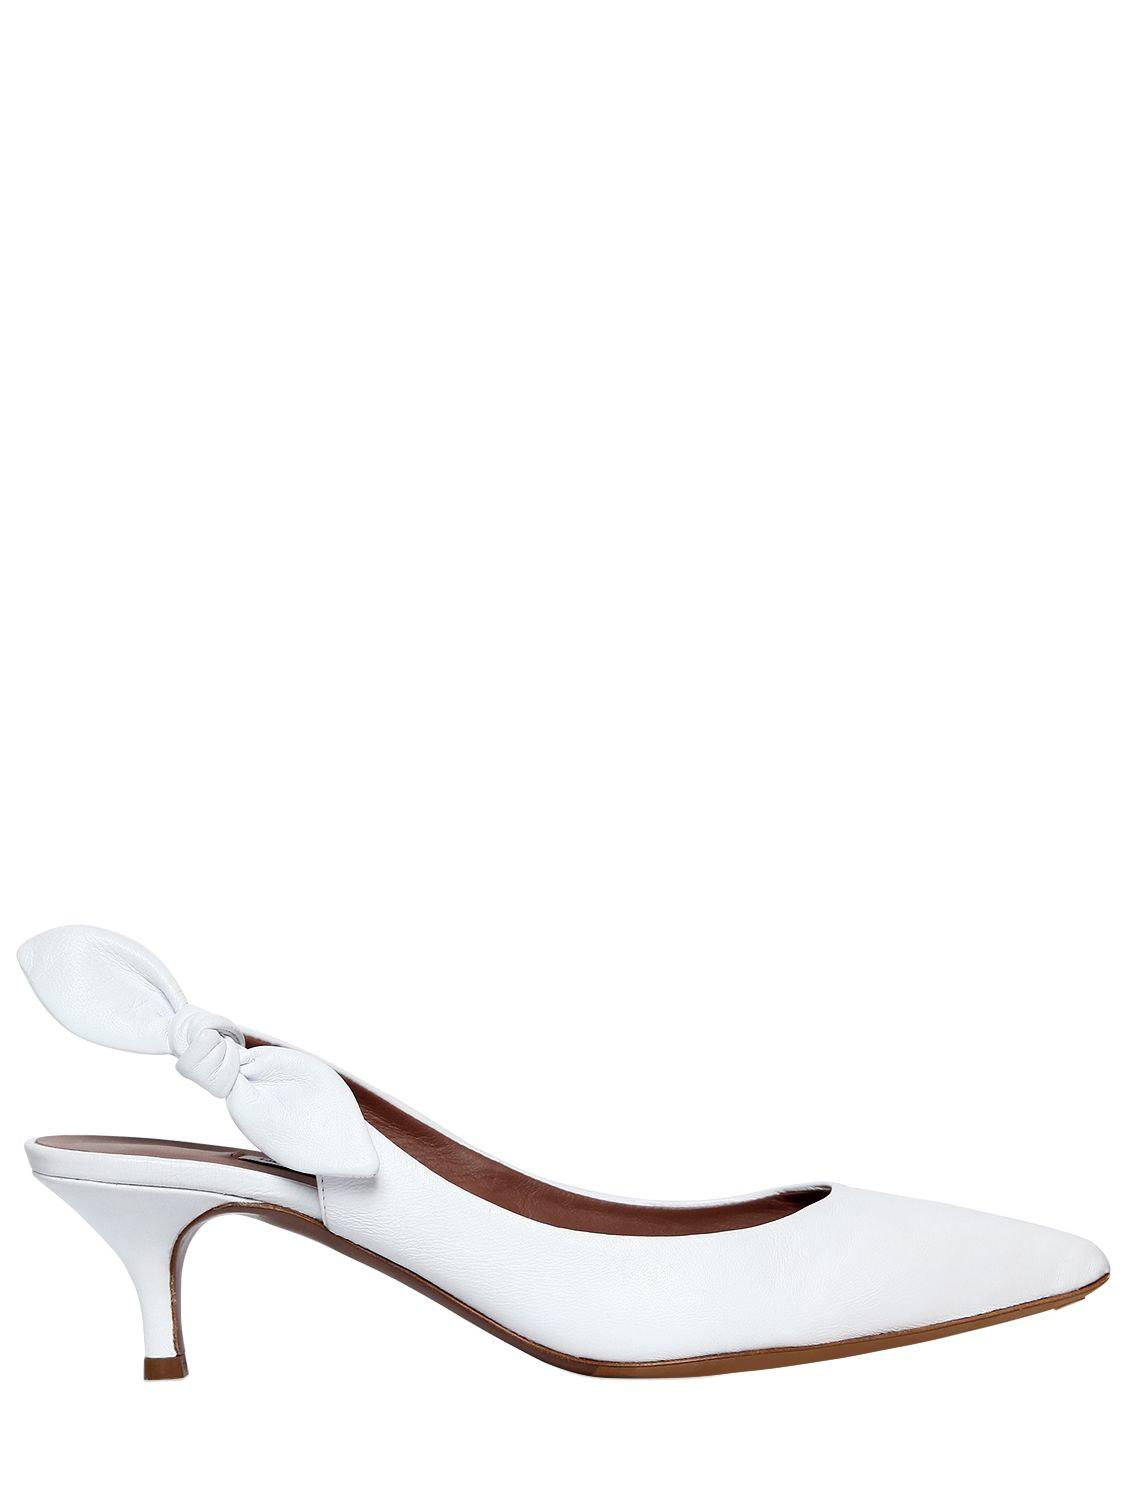 d002b42190f Lyst - Tabitha Simmons Rise Leather Slingback Pumps in White - Save ...